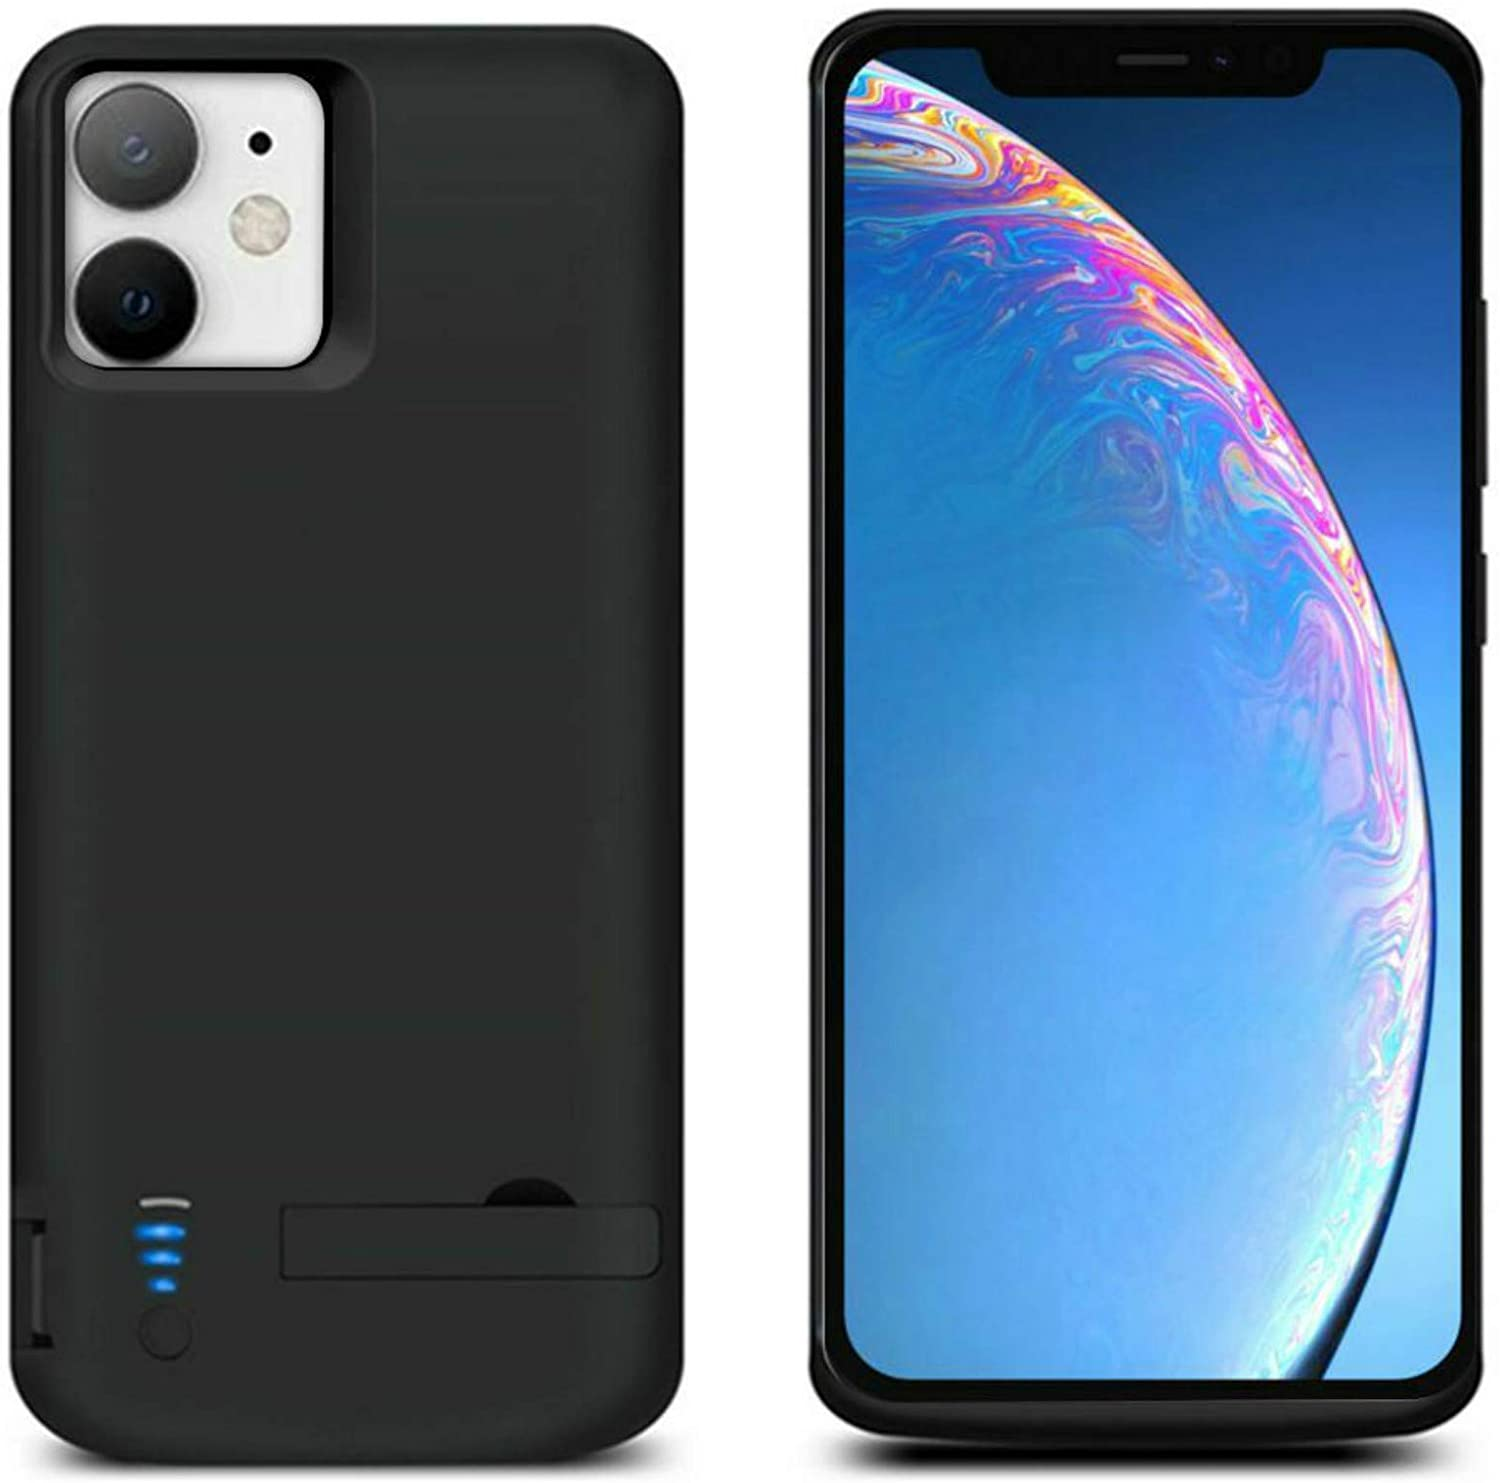 HQXHB Battery Case for iPhone 11 Pro Max [6000mAh] Portable Protective Charger Case Rechargeable Extended Battery Pack Charging Case Support Audio Function Fit for iPhone 11 Pro Max (6.5inch) - Black